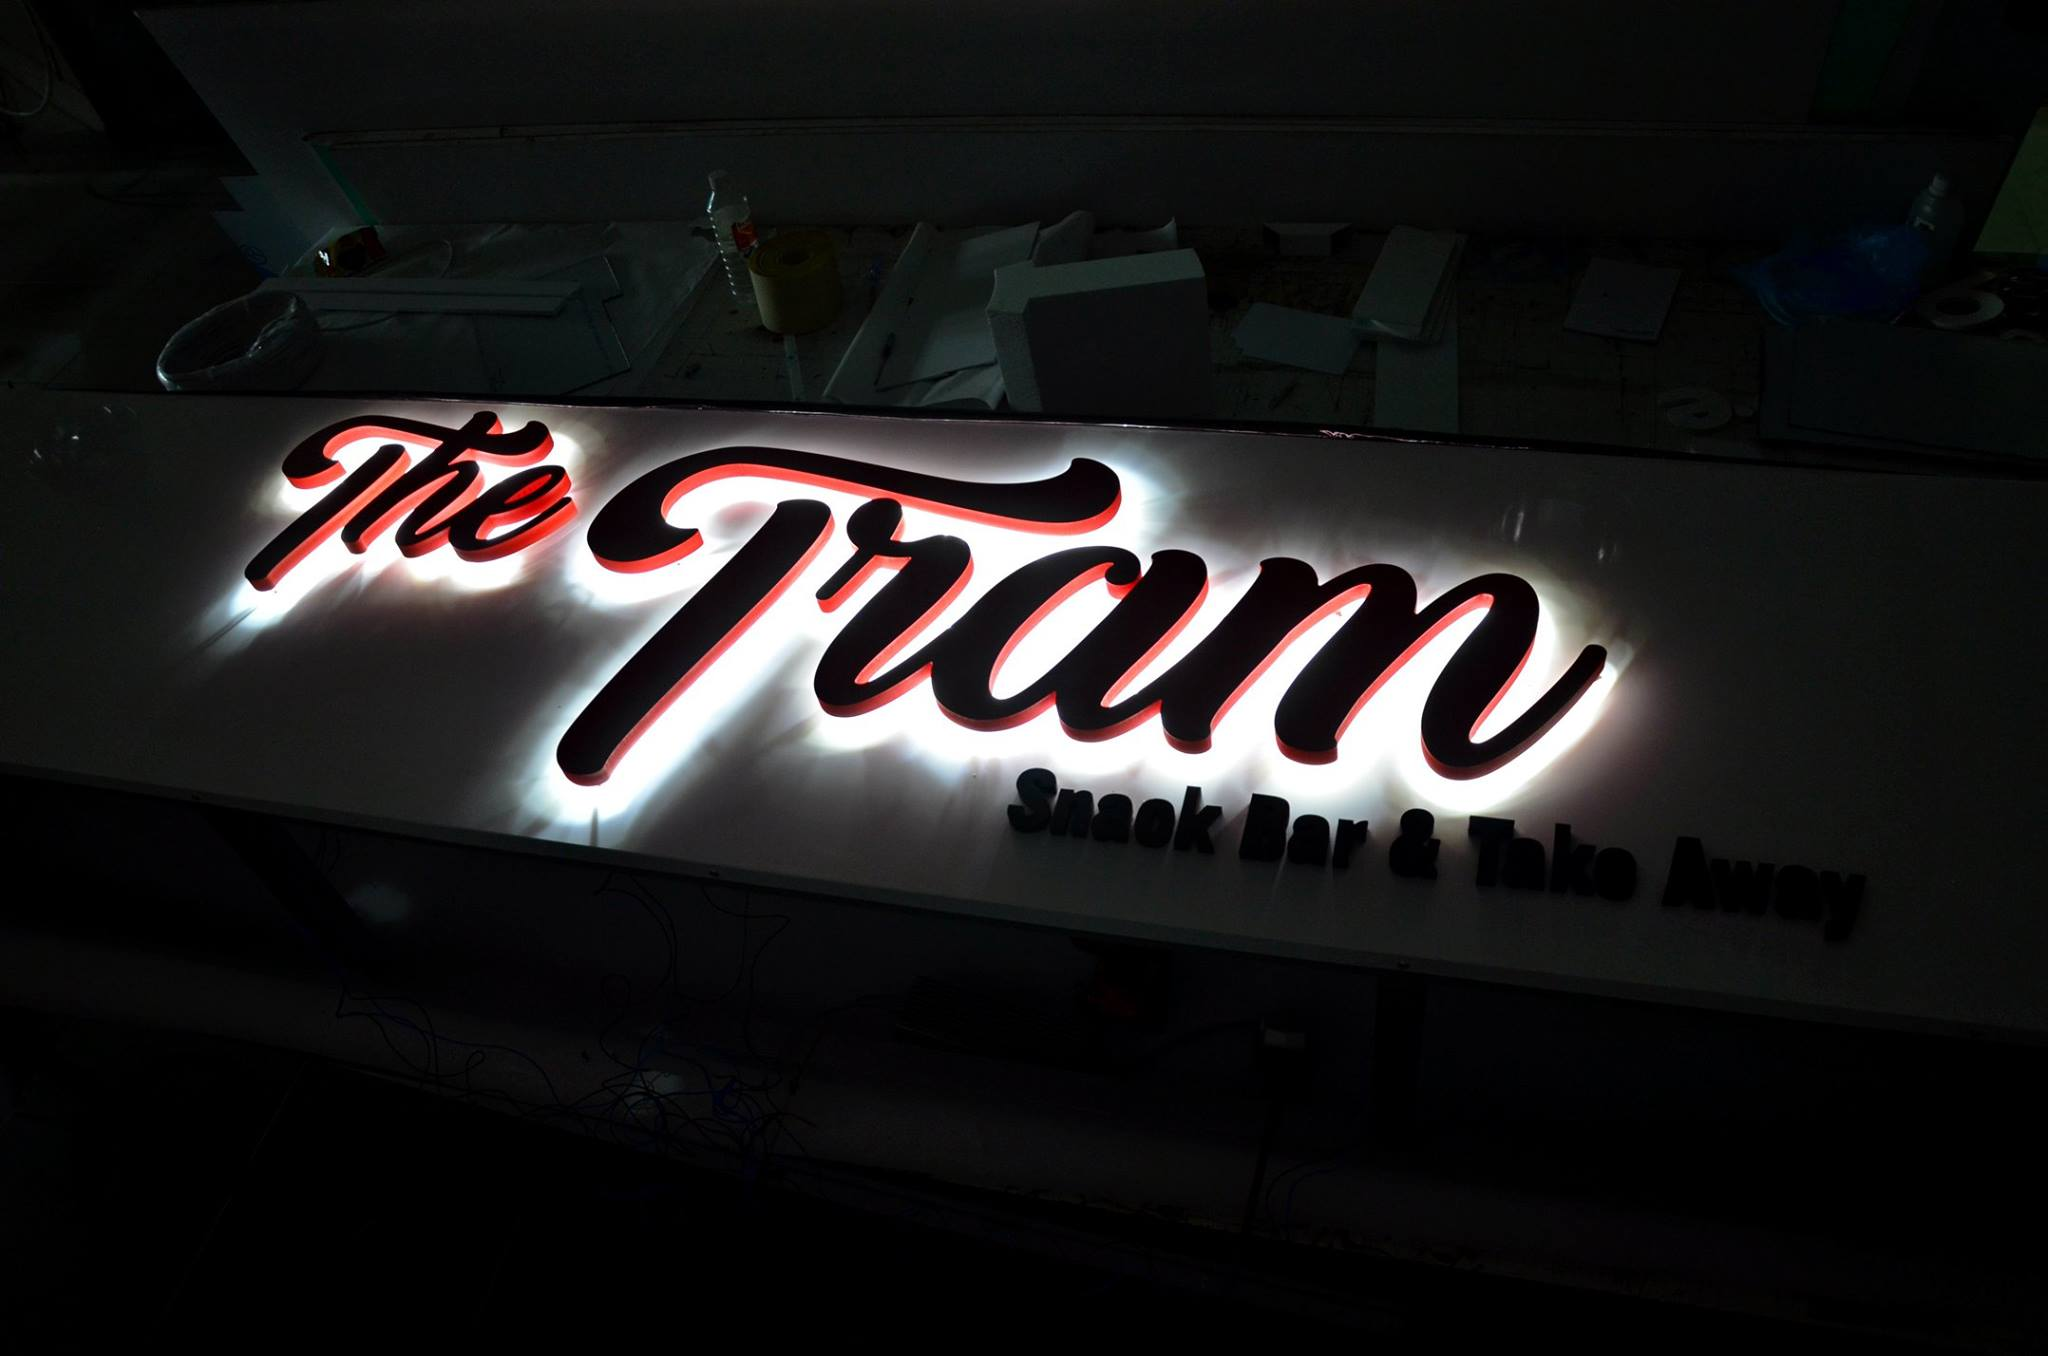 Tram 20mm pvc letters with halo led